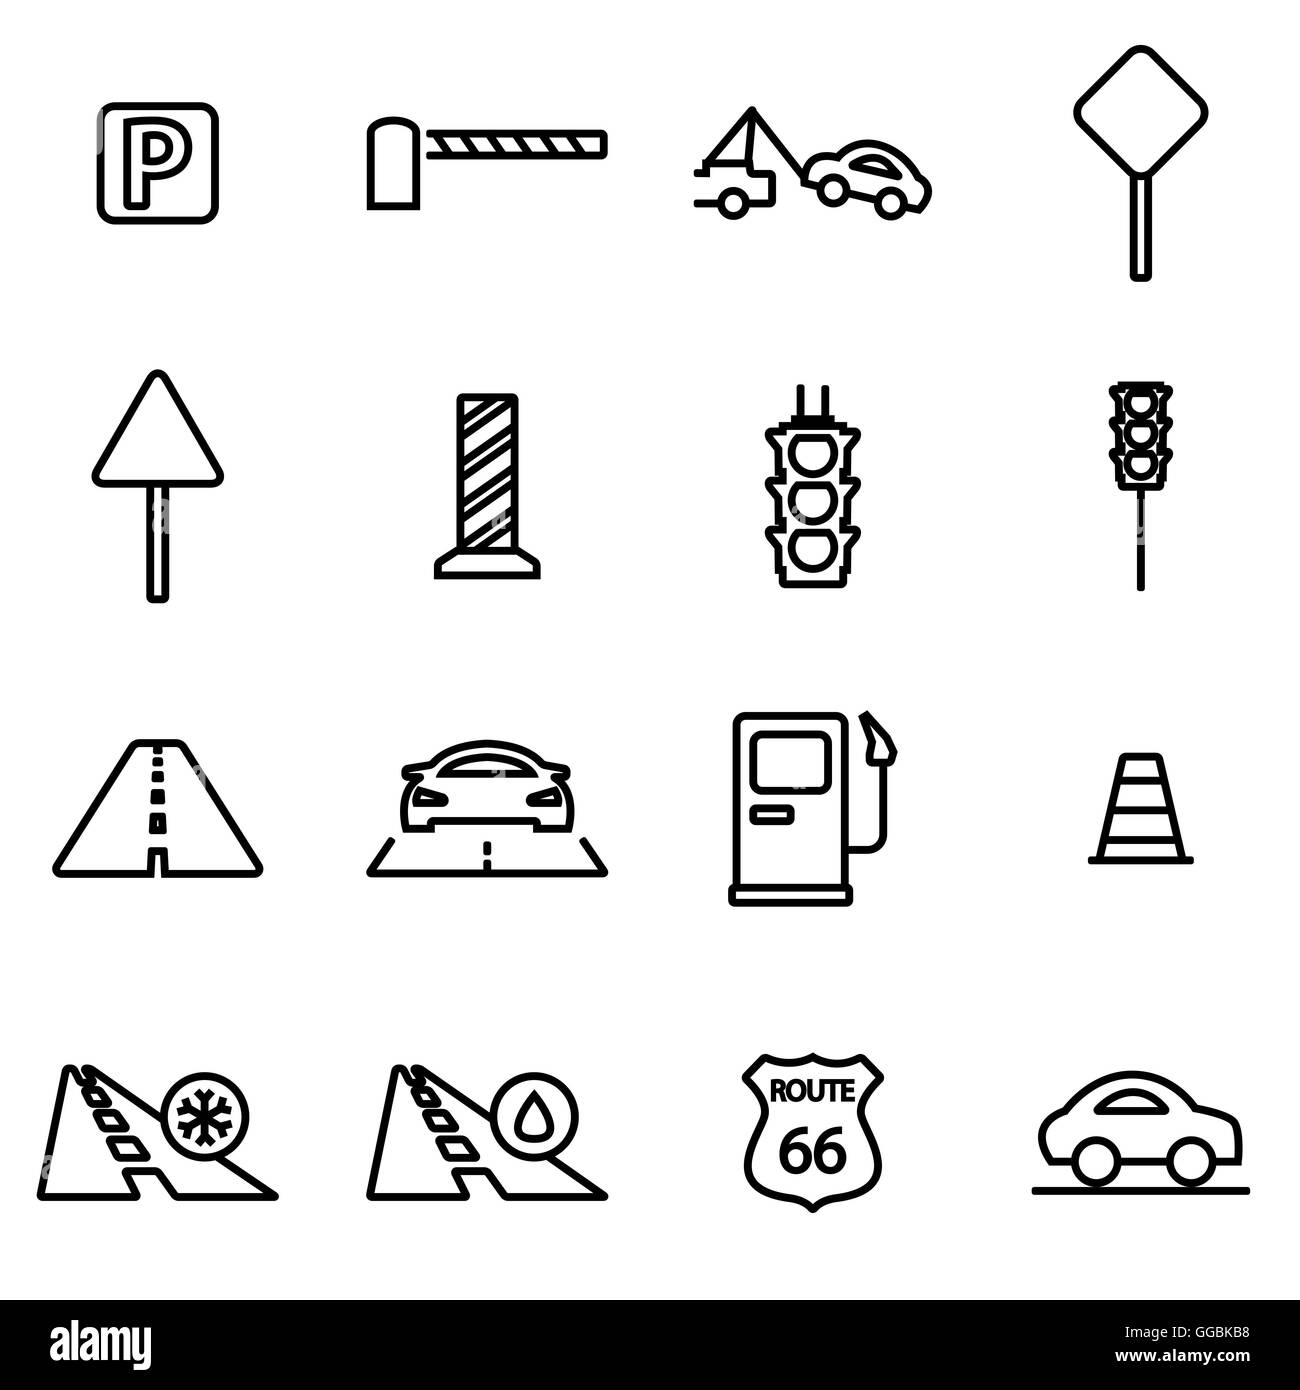 Vector line road icon set on white background - Stock Image